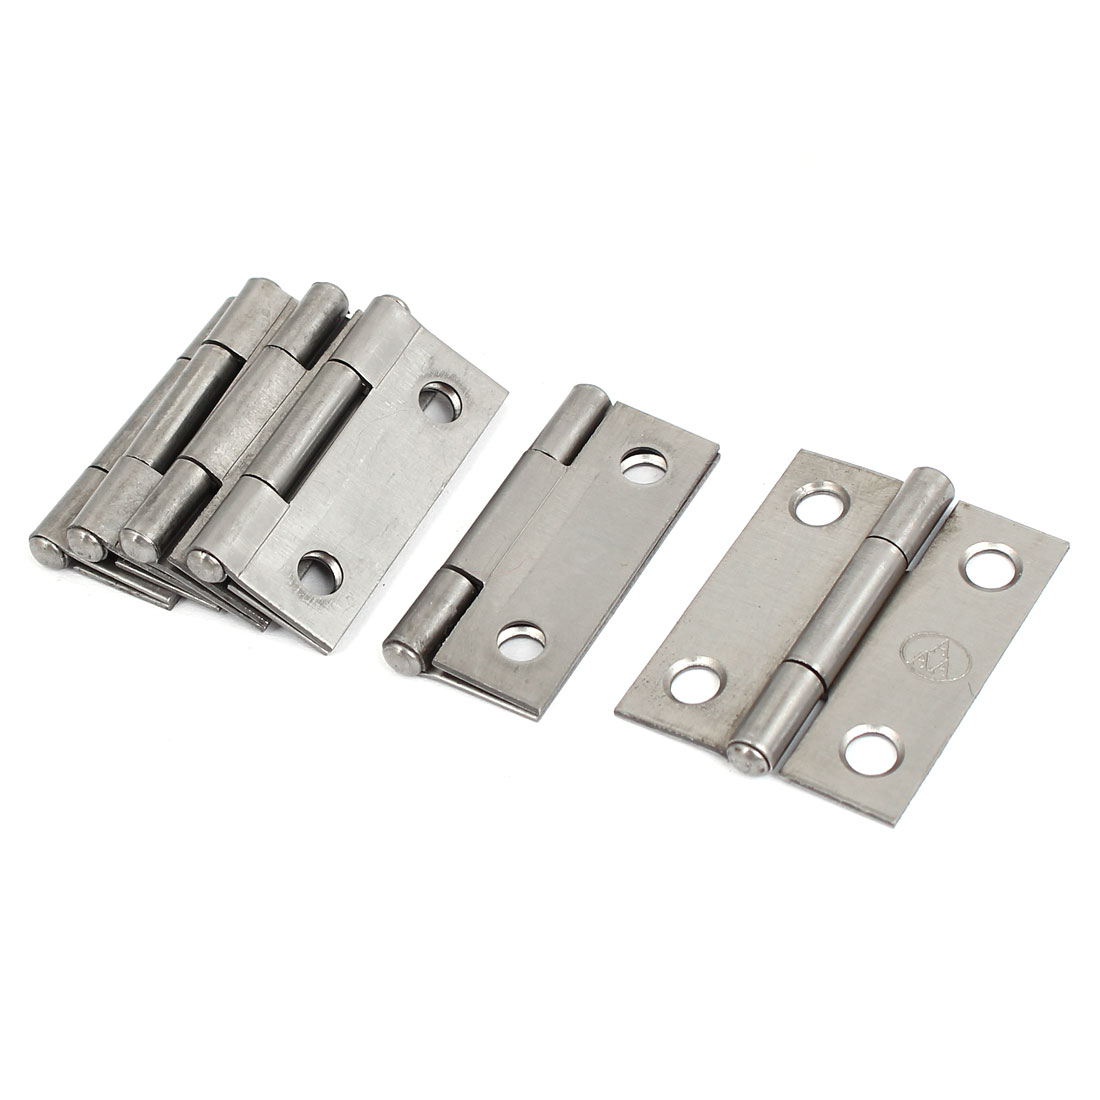 "Cupboard Showcase Door Toolbox Iron Butt Hinge Silver Gray 1.5"" Long 6pcs"